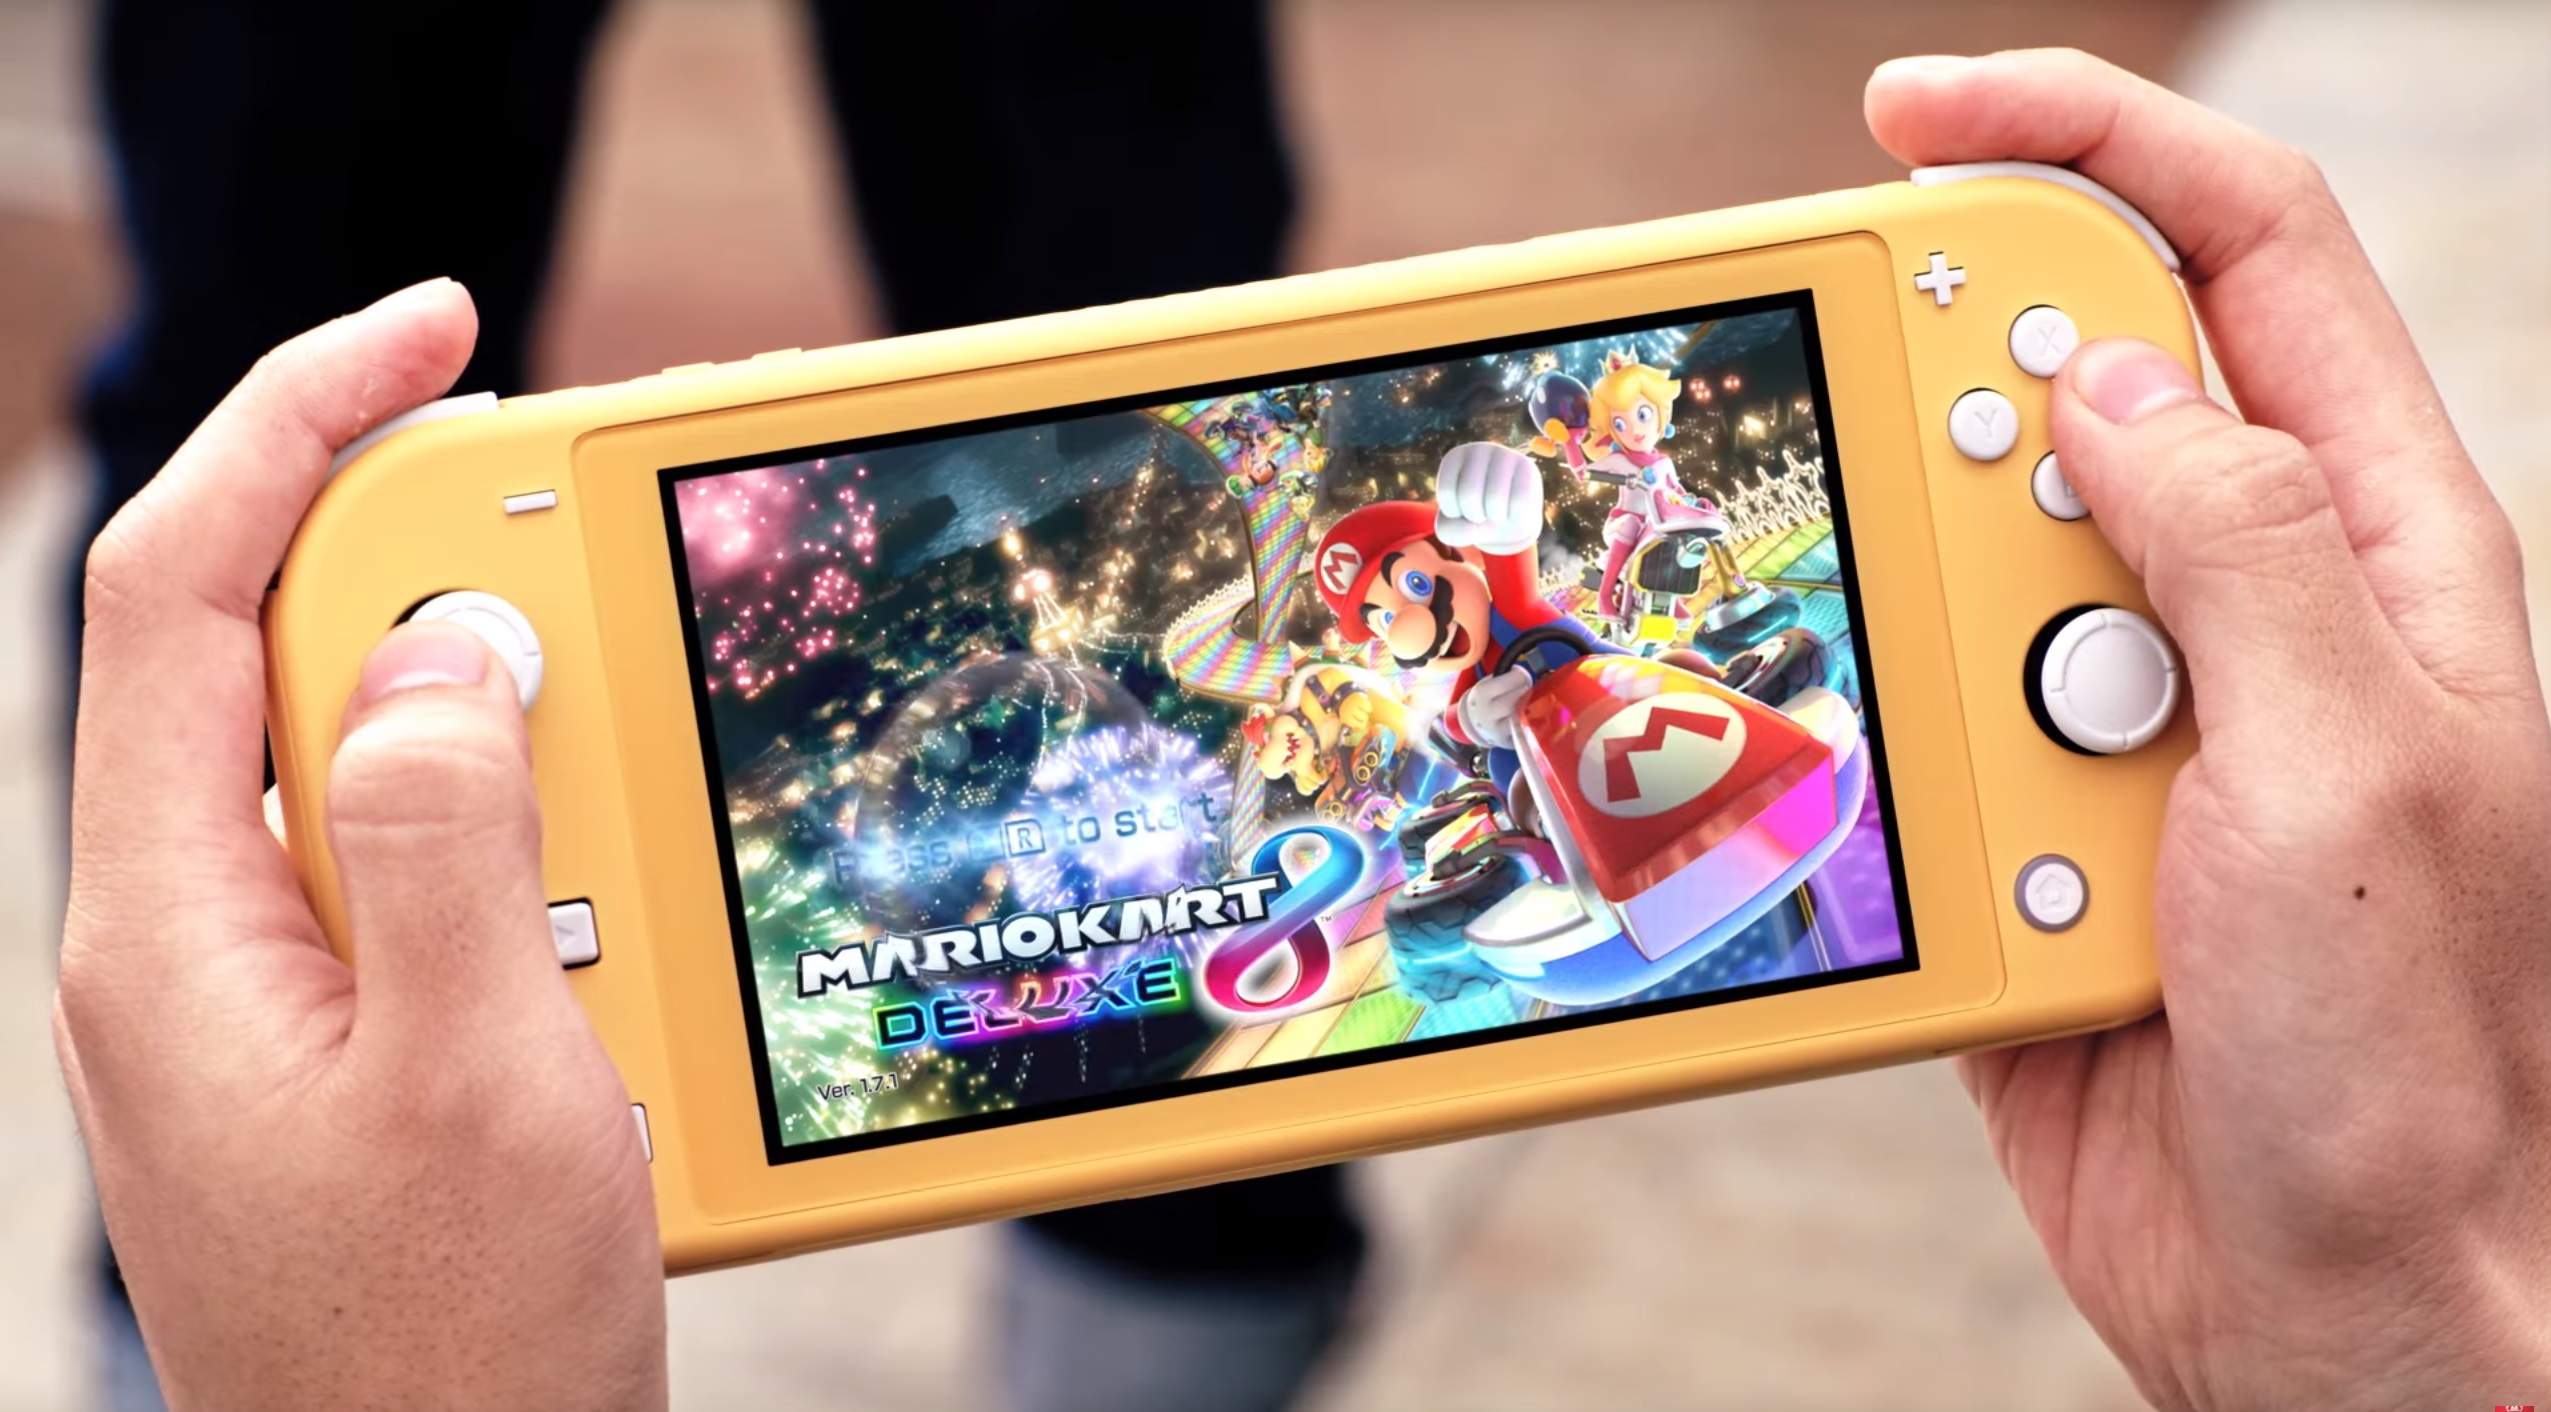 The new Switch OLED is on the way, but if you only plan to play portably, the compact and more affordable Switch Lite may still be worthwhile.